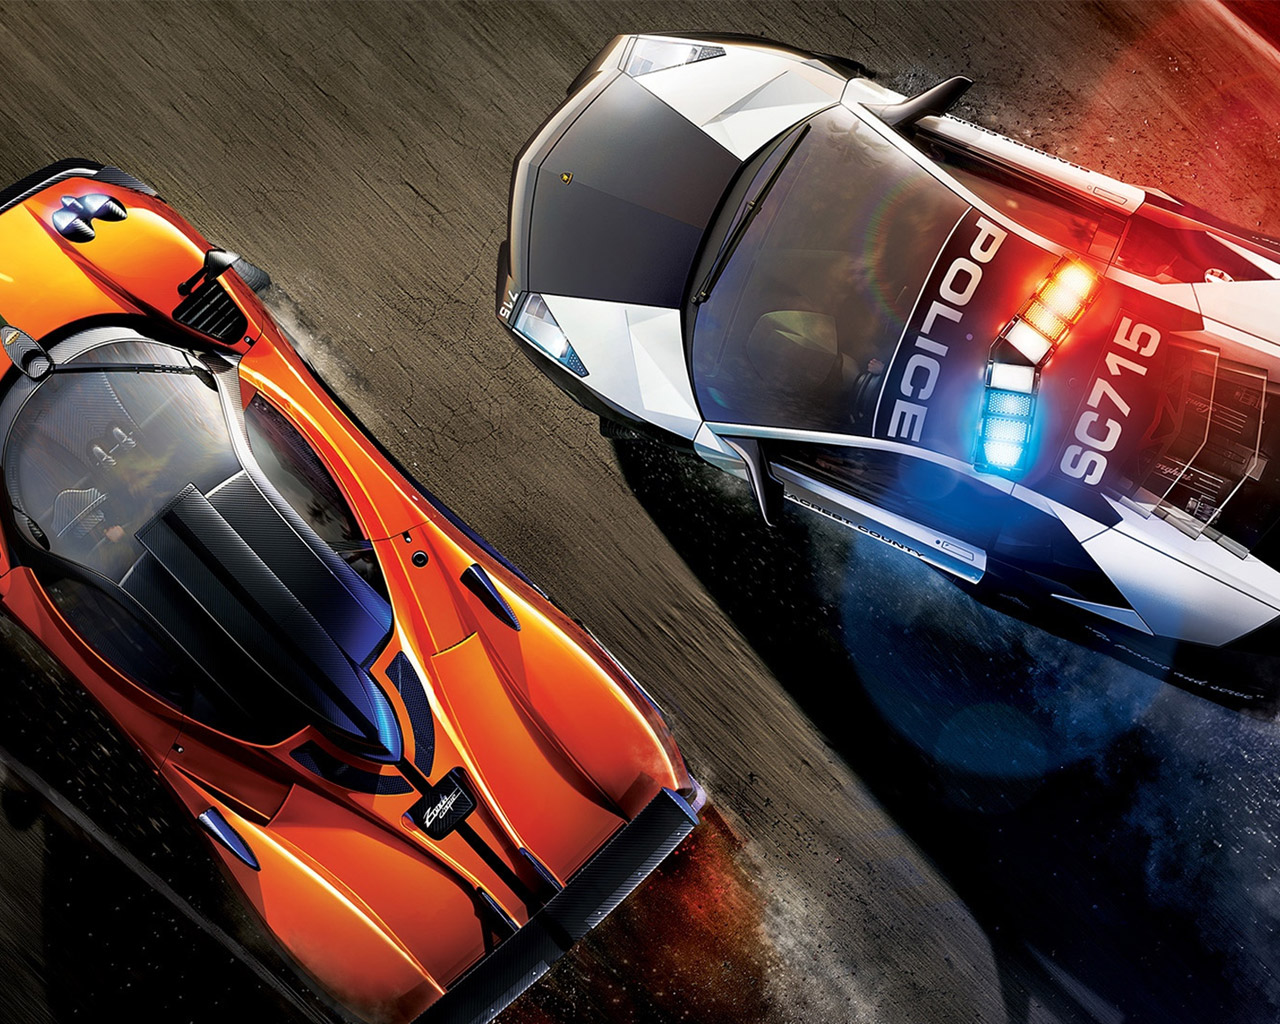 Need for Speed: Hot Pursuit Wallpaper in 1280x1024